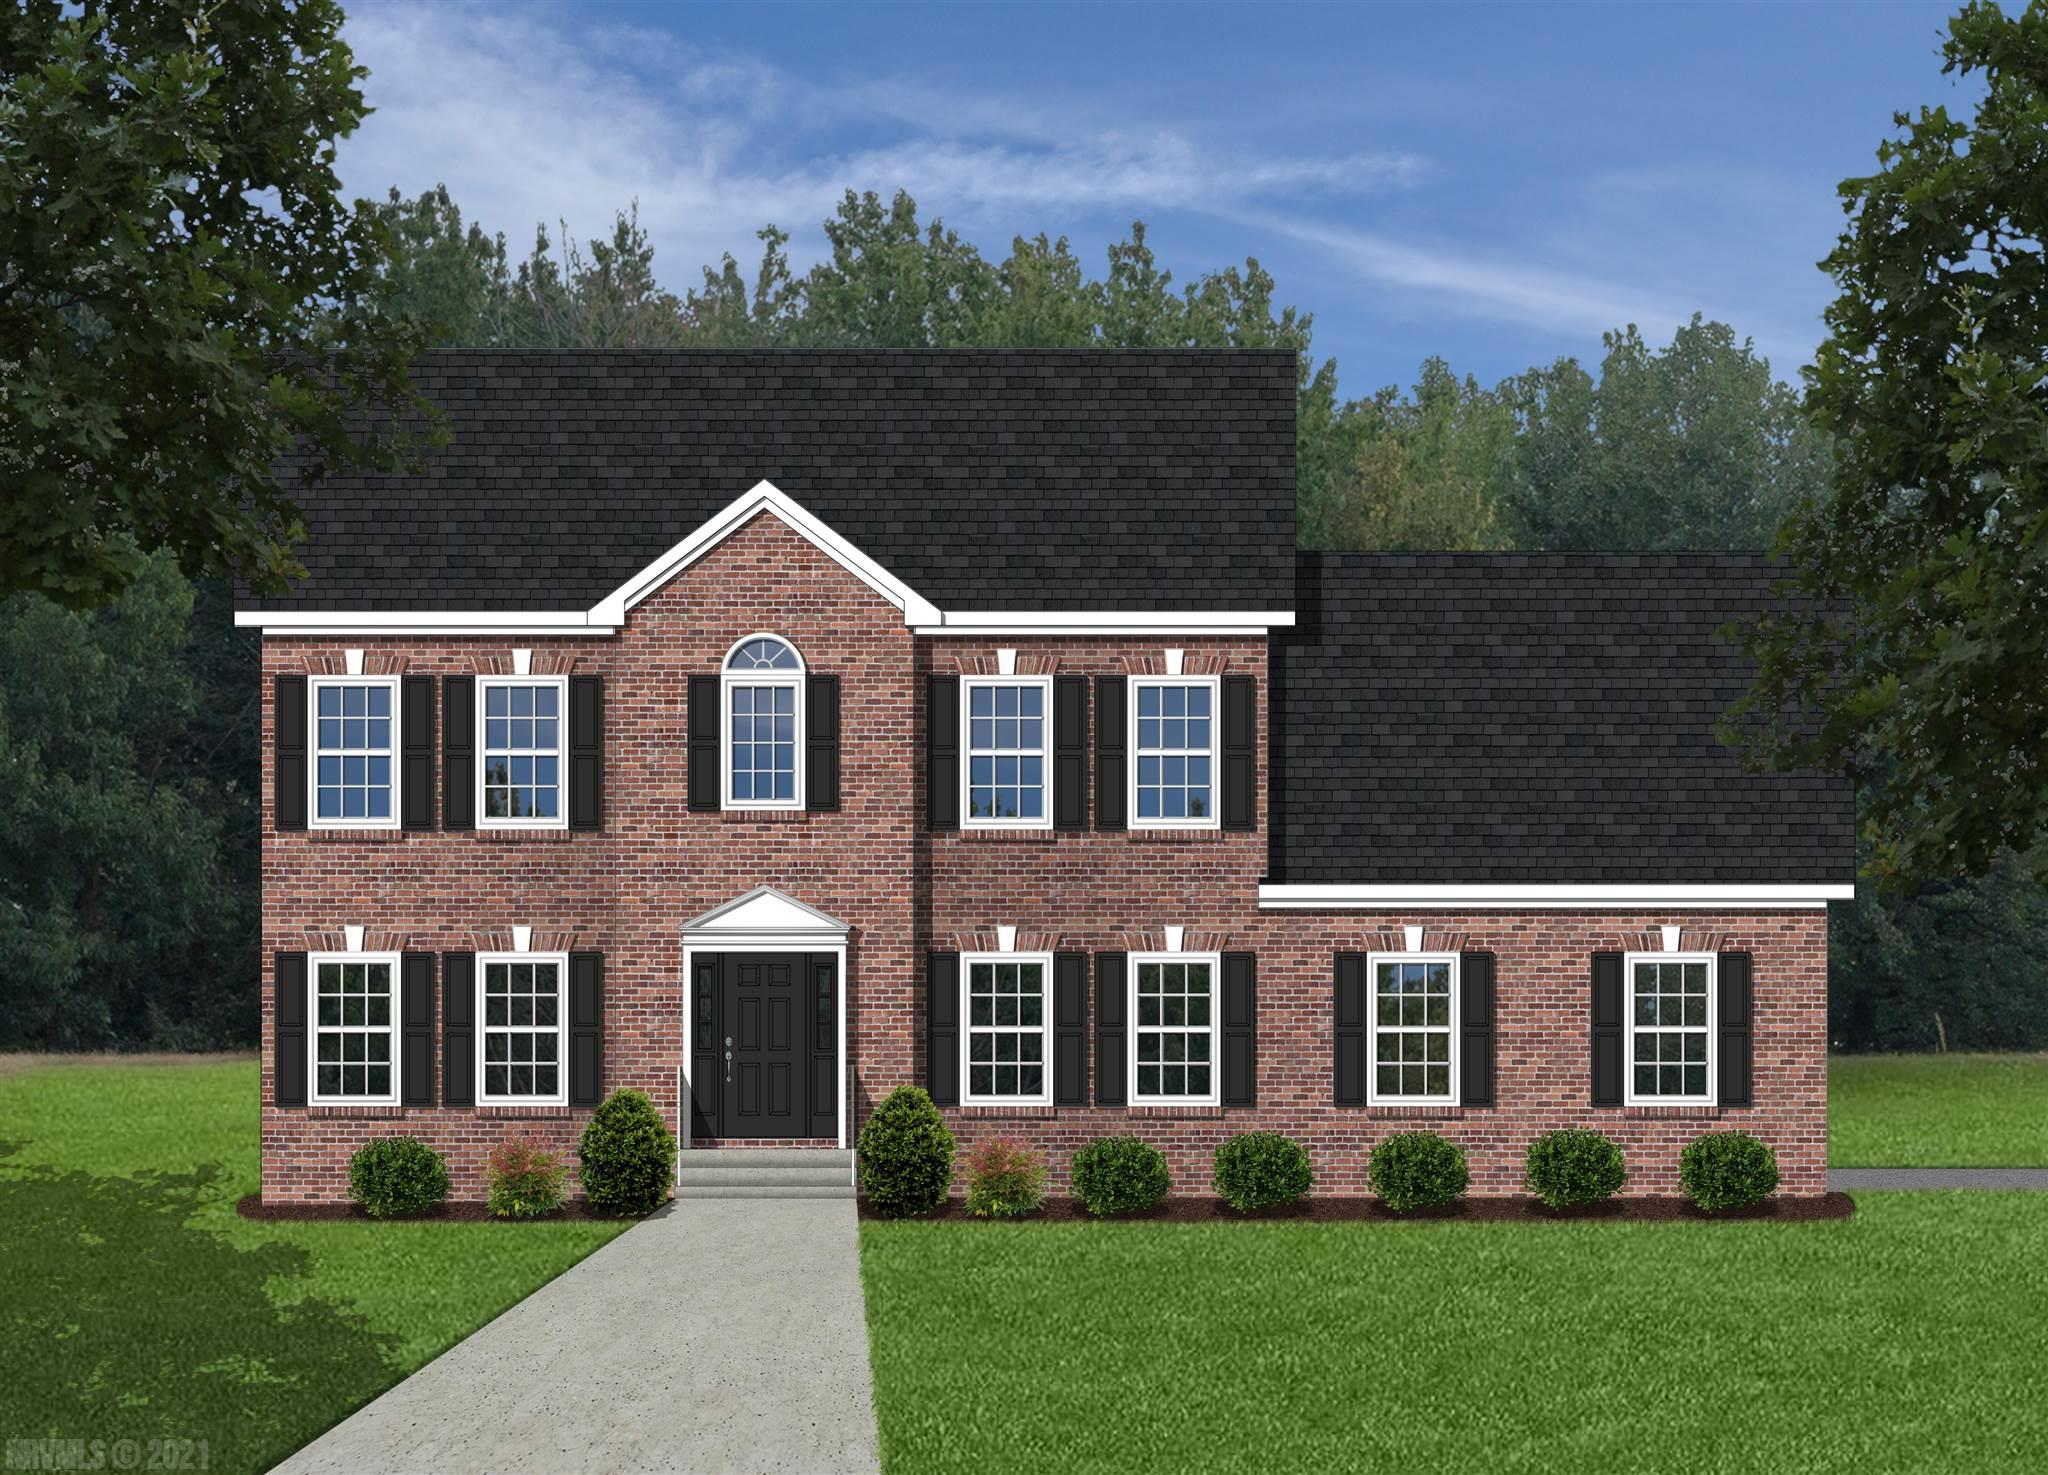 This is a pre-construction listing that is not yet built. Please find information below and pictures attached for our Washington style home which offers 2475 square feet above grade, and 9' framed walls on first floor with smooth drywall finish.  This house plan incorporates hardwoods on the entire main living level, ceramic tile in the baths and laundry, oak treads to the second floor if applicable, and carpet throughout remaining areas.  The master shower offers ceramic tiled walls and floor!  Premium Tahoe cabinets by Timberlake in the kitchen make the home even more beautiful.  The kitchen and bath counter tops are luxurious granite.  Upgraded trim in all finished areas.  Crown molding can be found in the dining room and master bedroom, as well as a chair rail with wainscoting in the dining room.  The exterior finishes consist of double-hung windows, brick, siding, and architectural shingles.